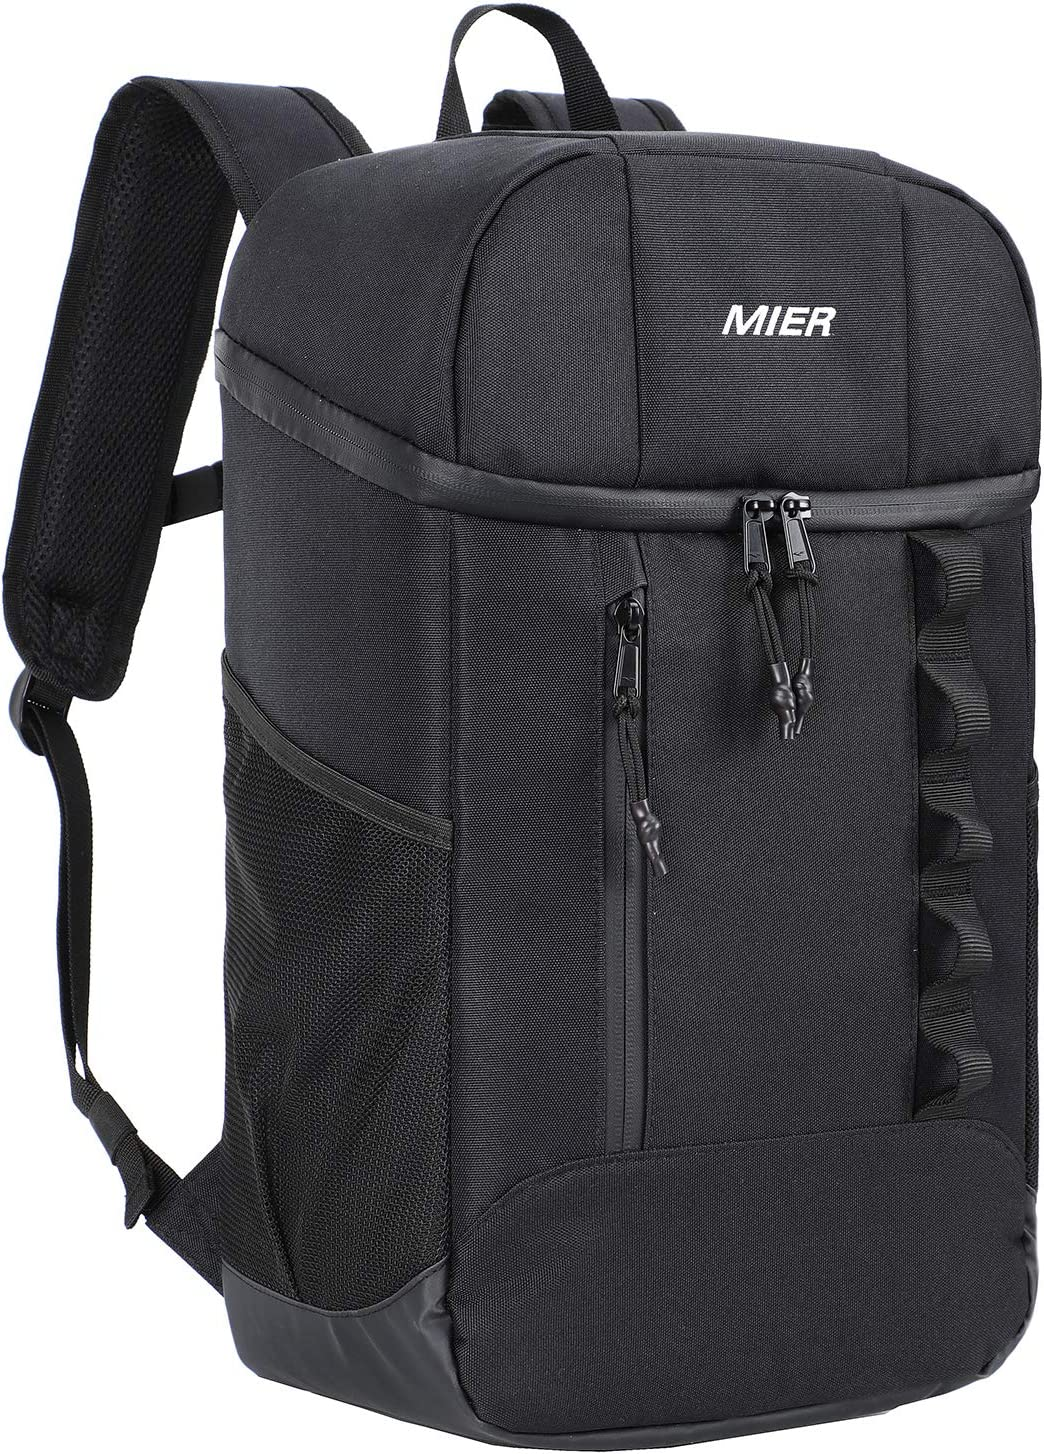 MIER Leakproof Insulated Backpack Lunch Cooler Backpack for Men and Women, Water Resistant, 20 Can, Black